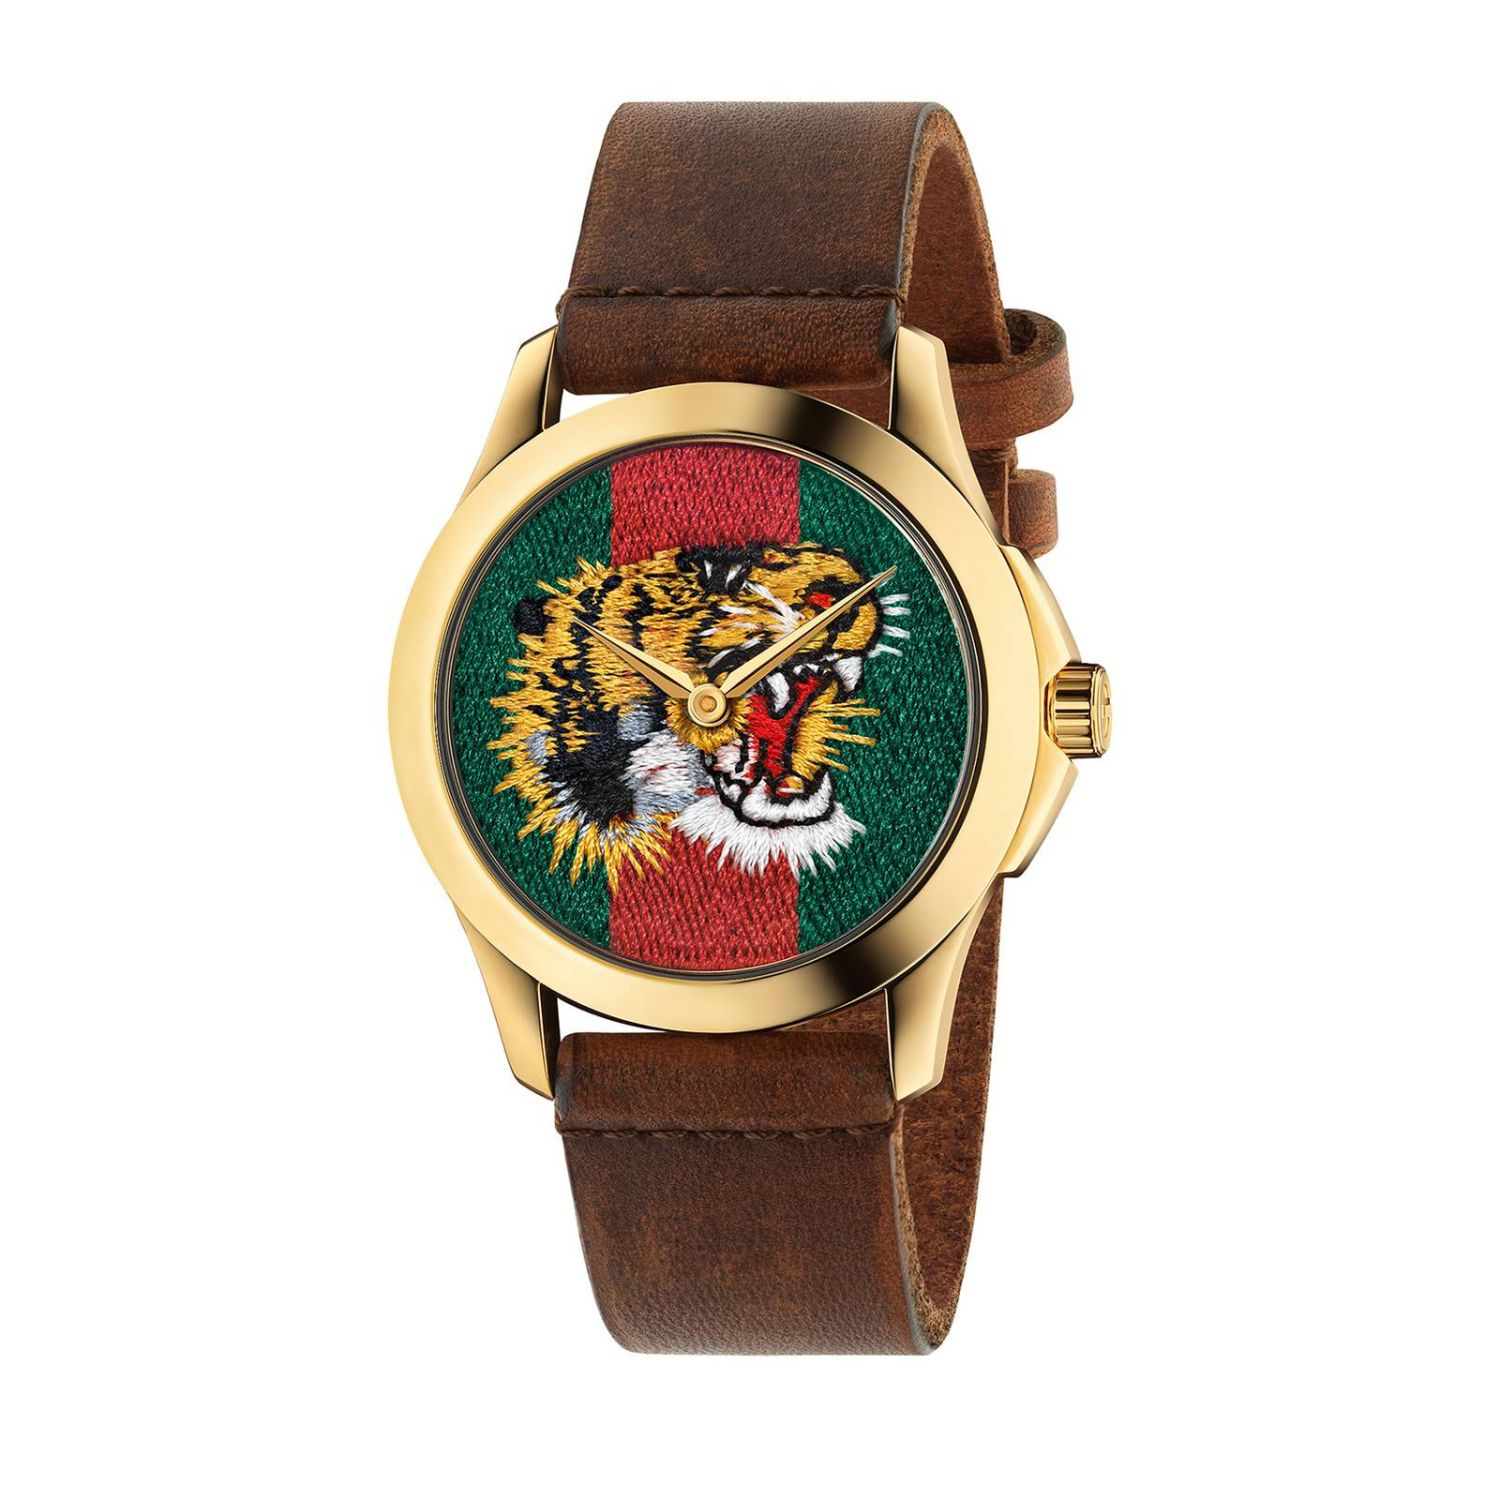 Le Marché des Merveilles watch 38mm case with Angry Cat pattern brown 1